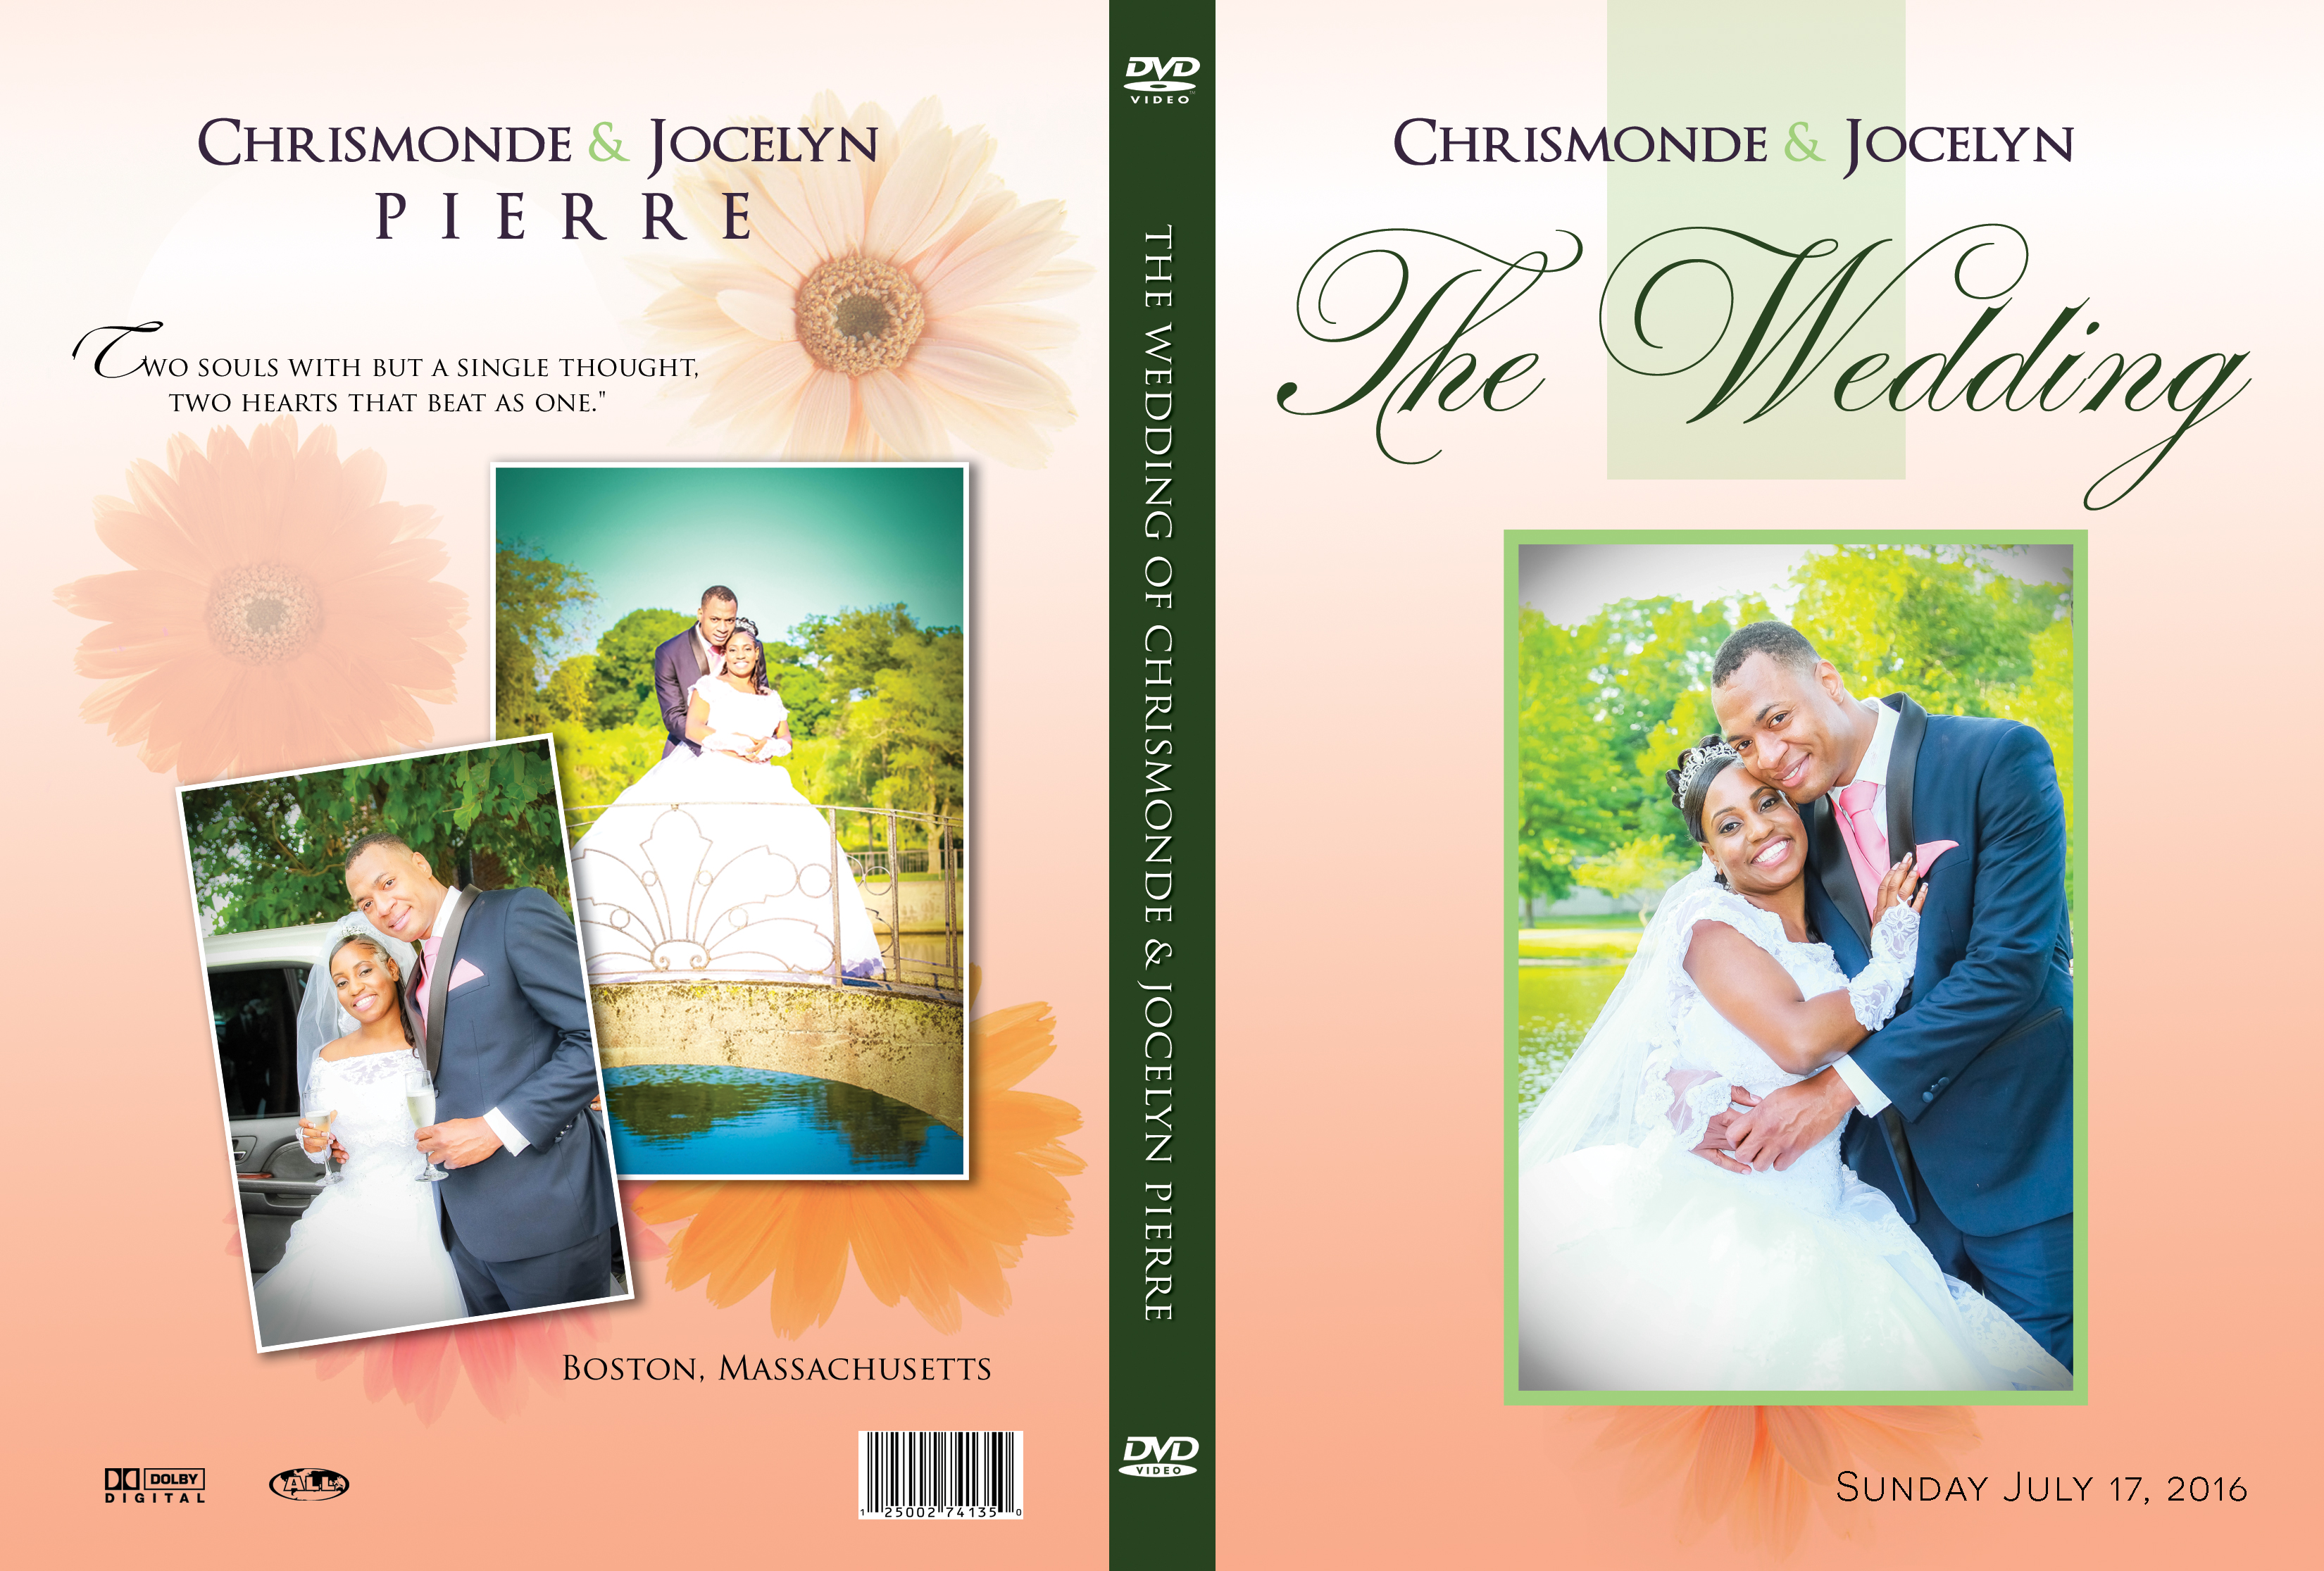 Need a wedding DVD/Bluray Cover? Look NO FURTHER!